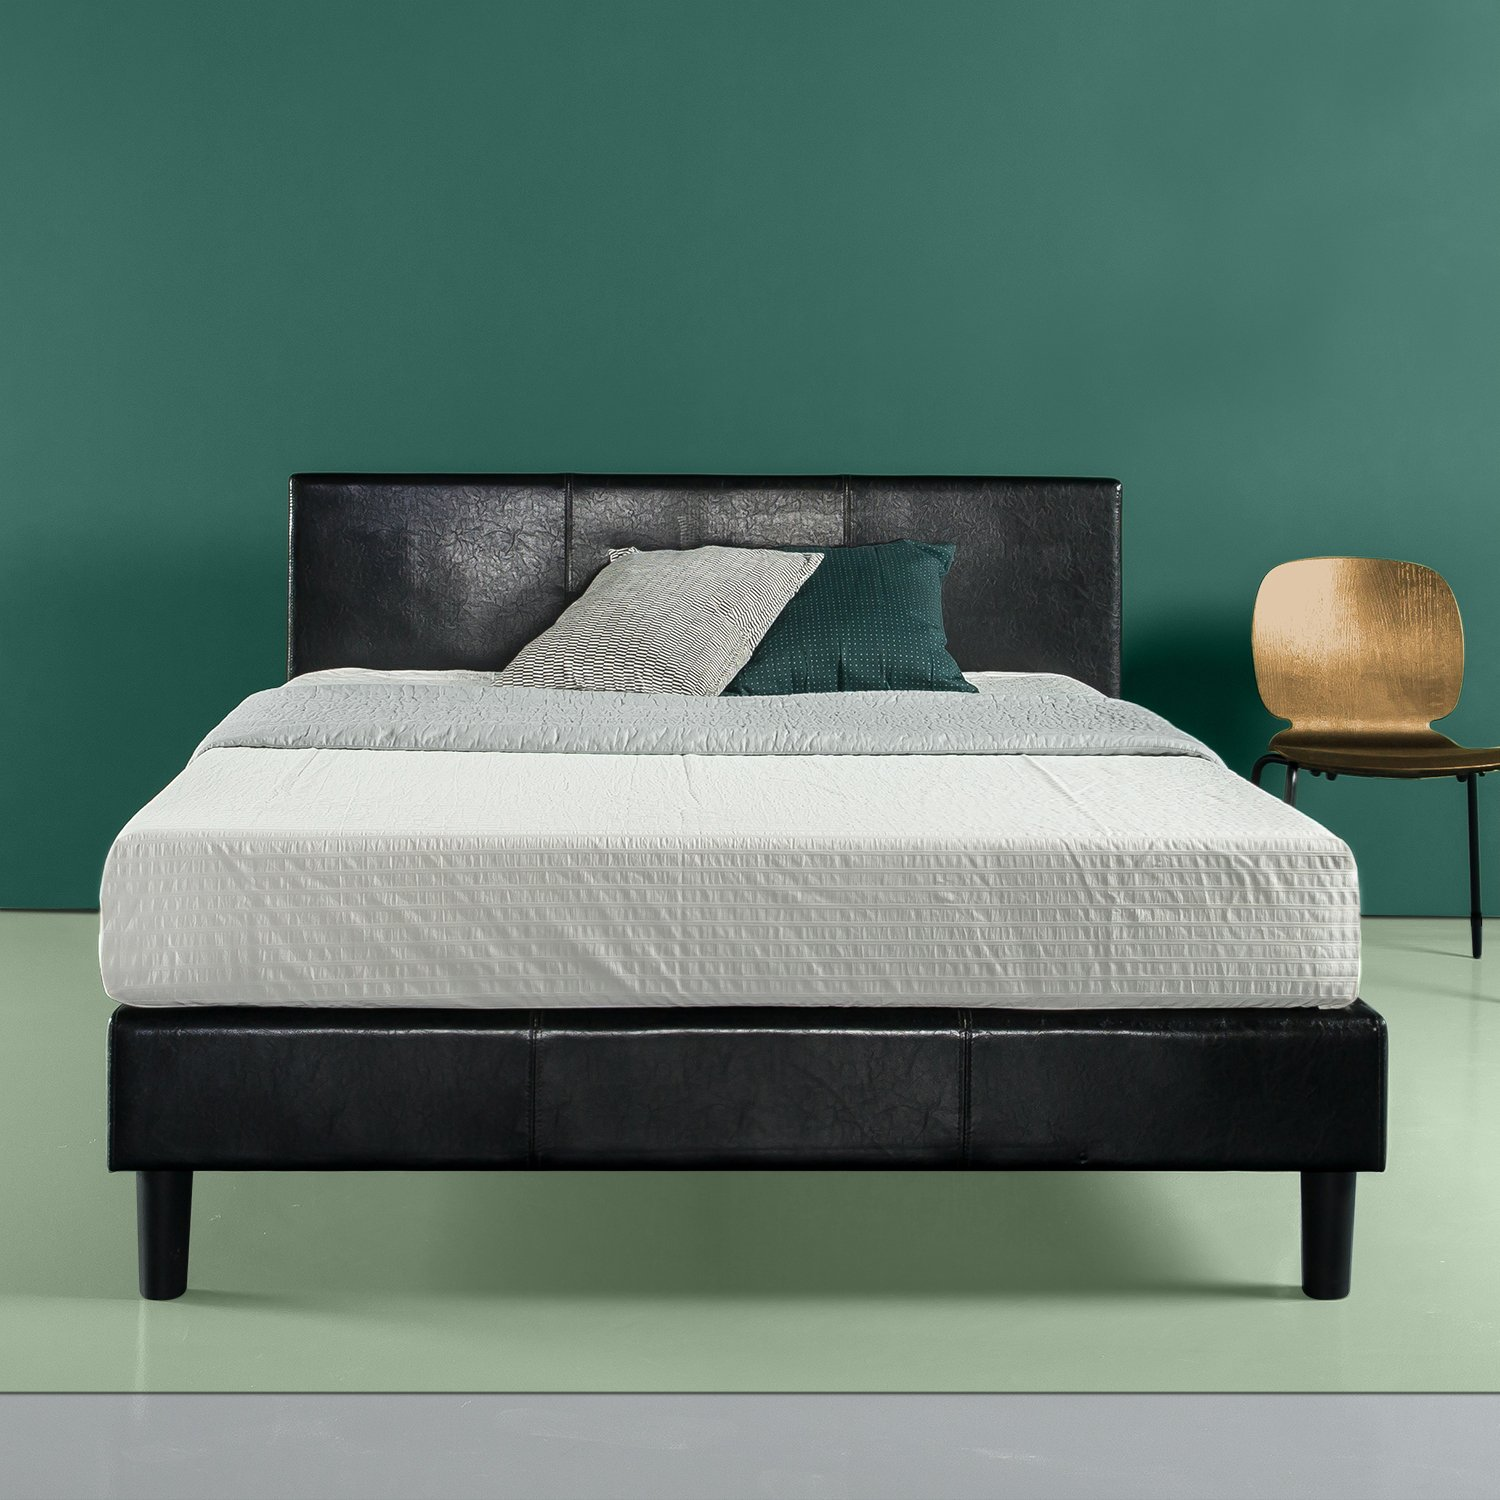 Zinus Jade Faux Leather Upholstered Platform Bed / Mattress Foundation / Easy Assembly / Strong Wood Slat Support / Black, Queen by Zinus